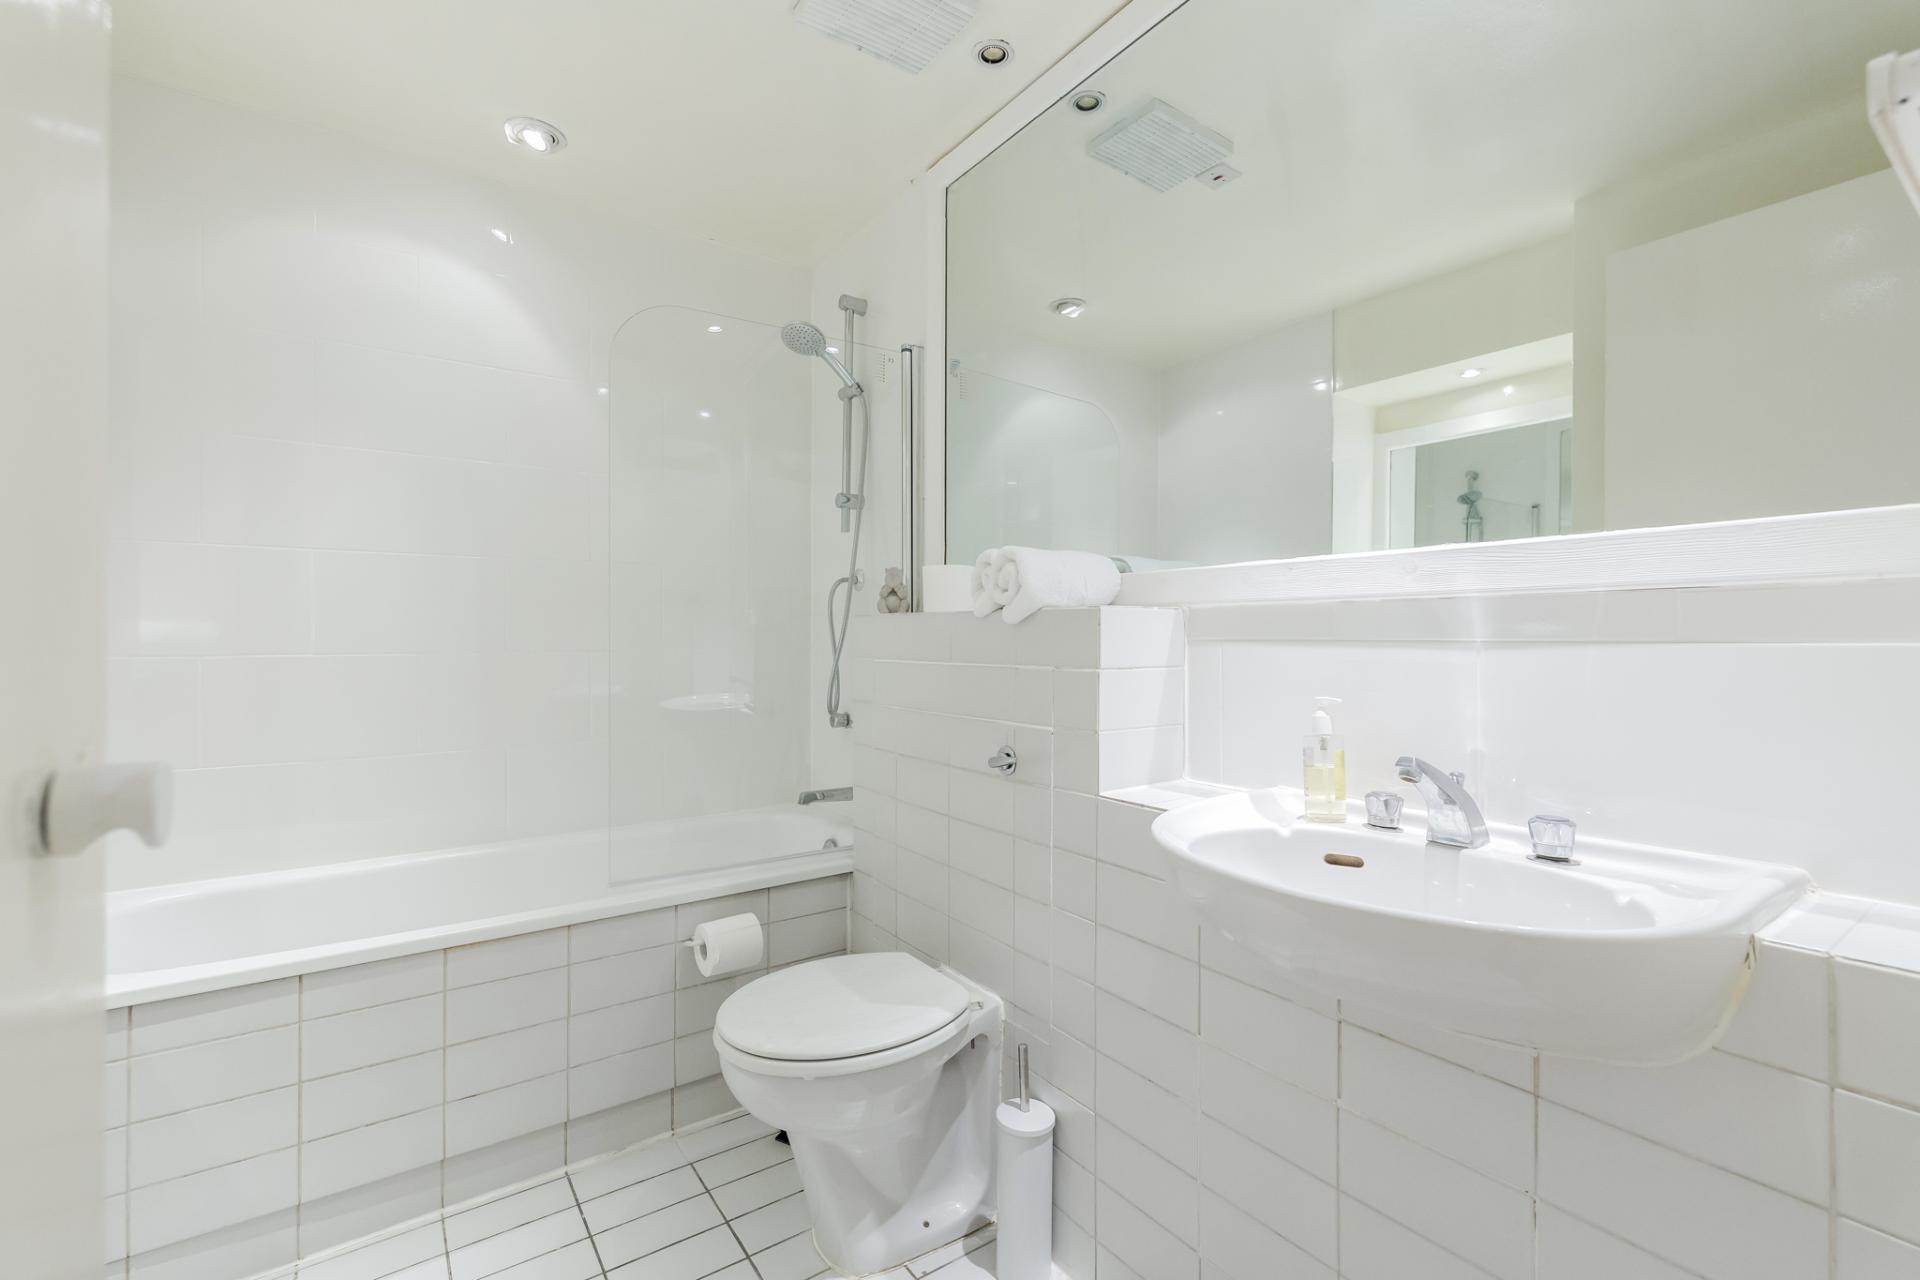 Bathroom at Earls Court Serviced Apartment, Kensington, London - Citybase Apartments